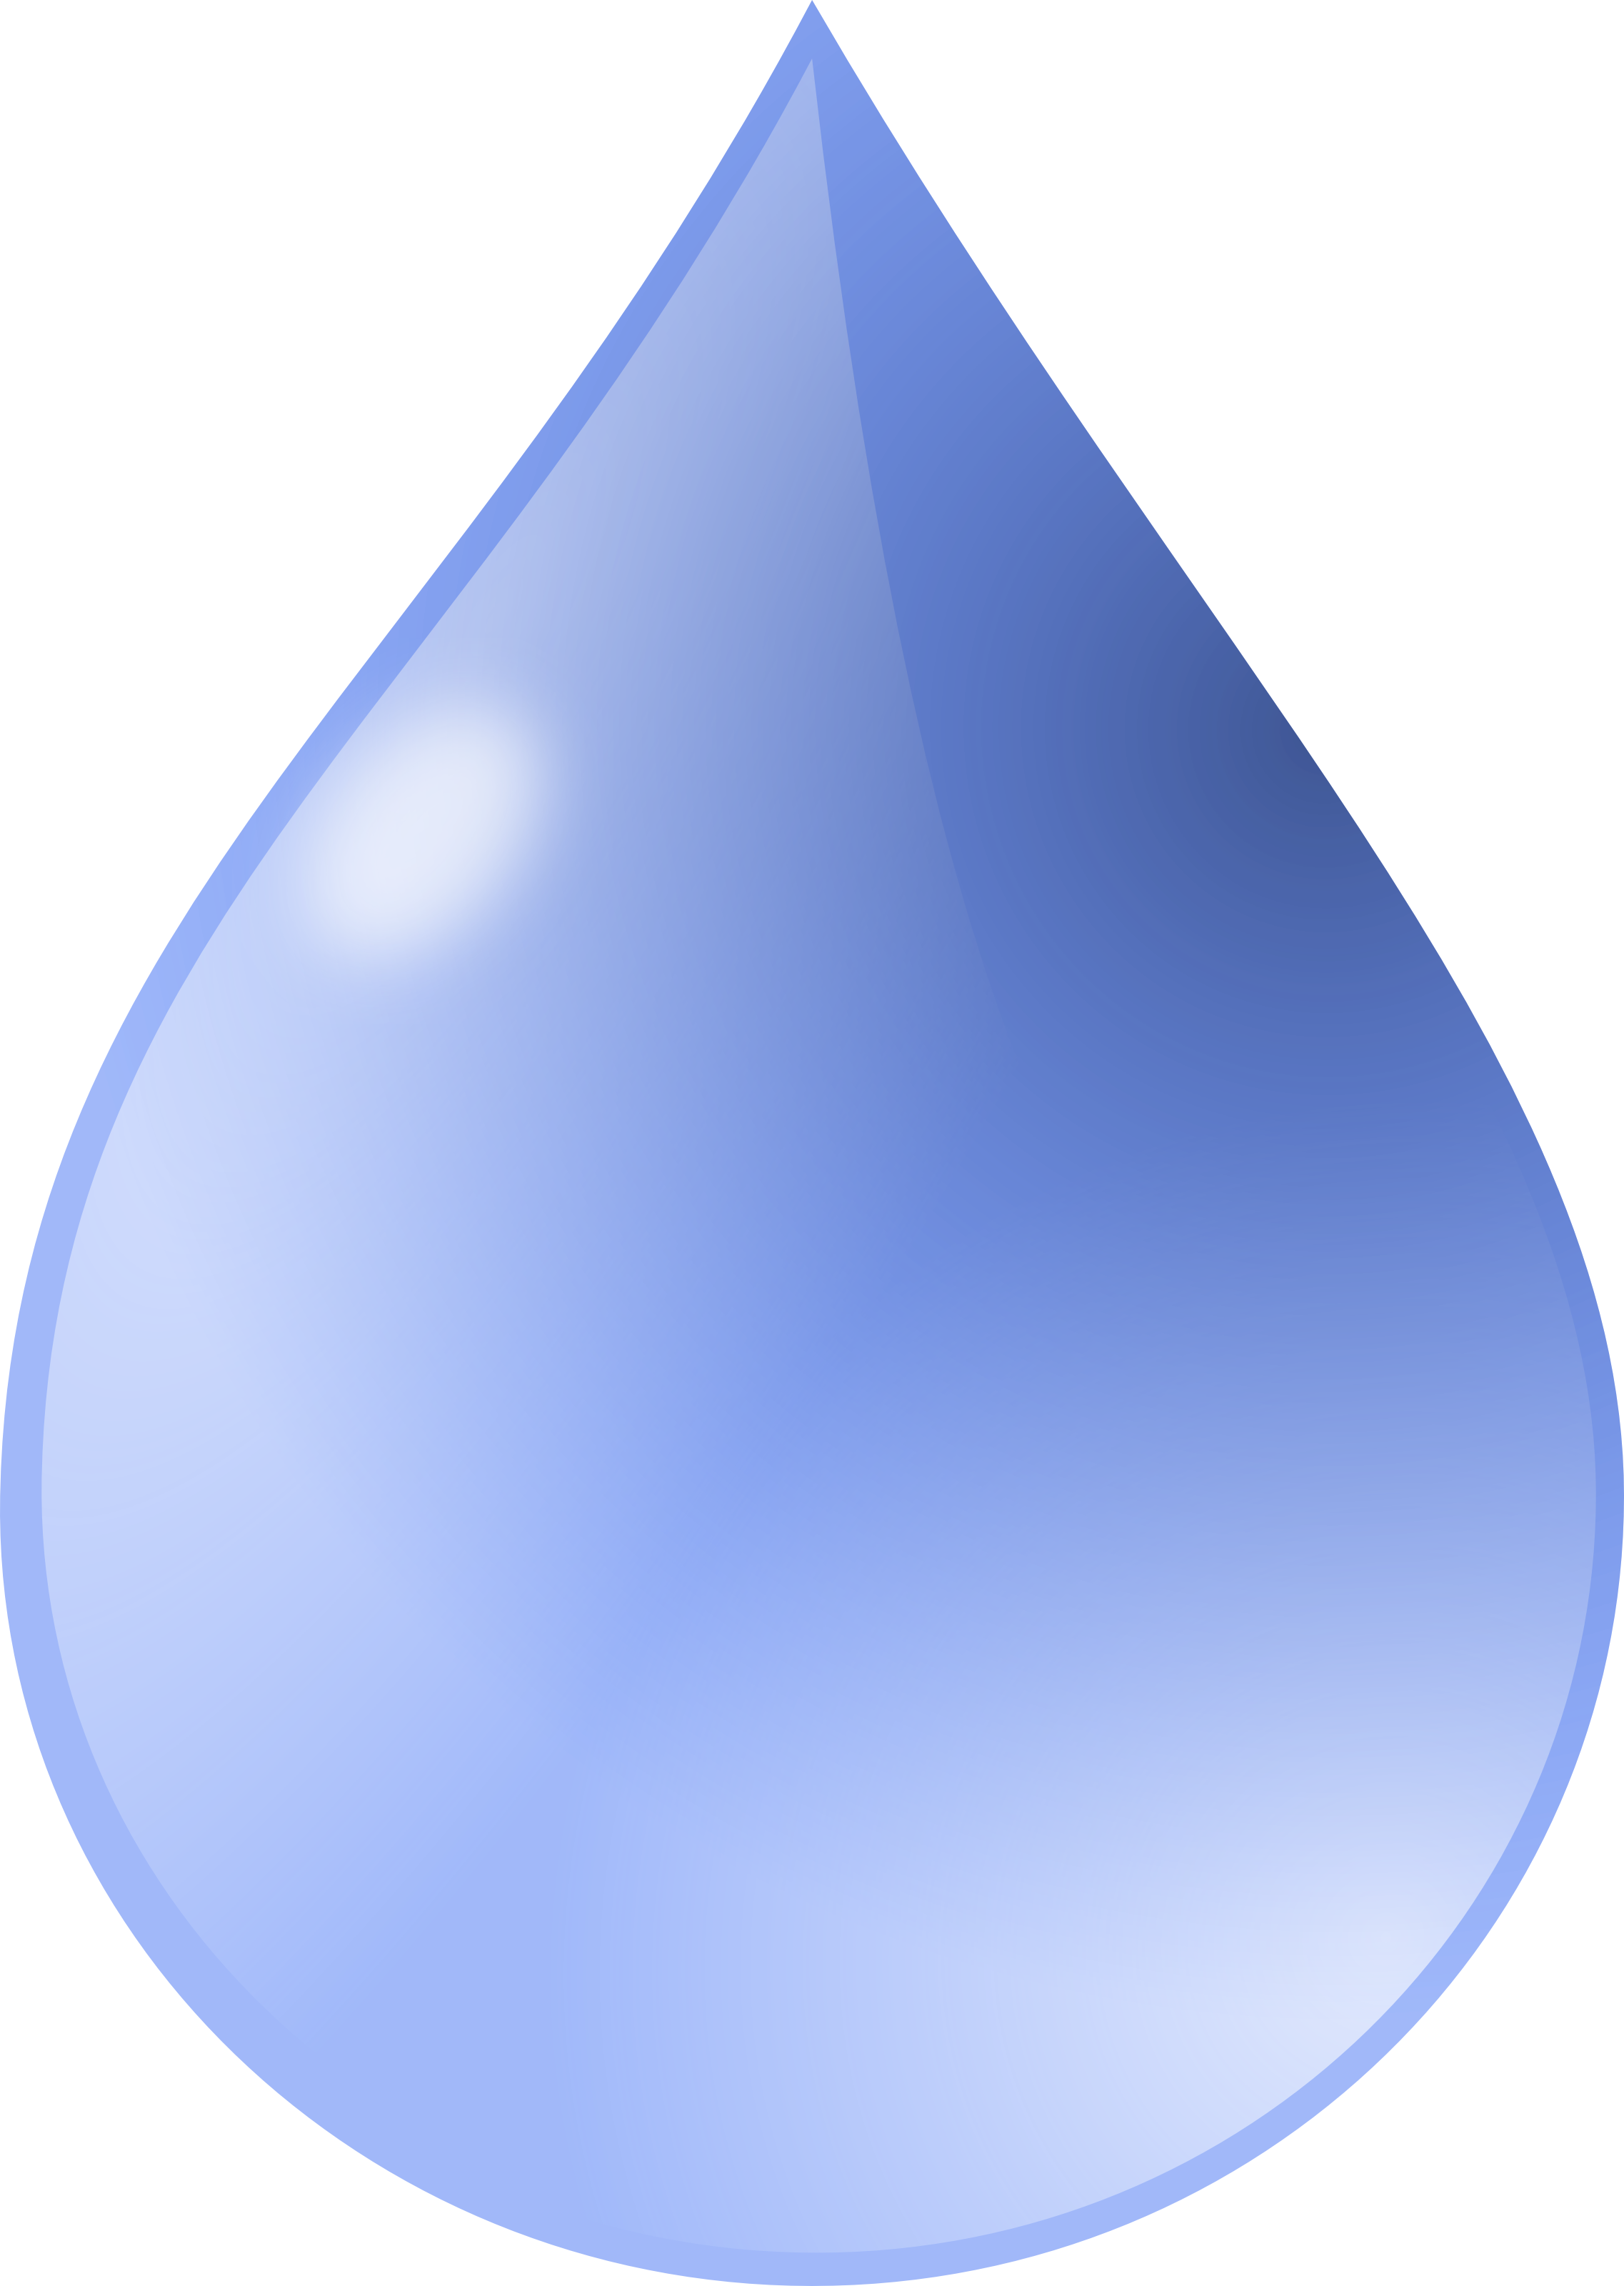 Download Water Drop Clipart HQ PNG Image.